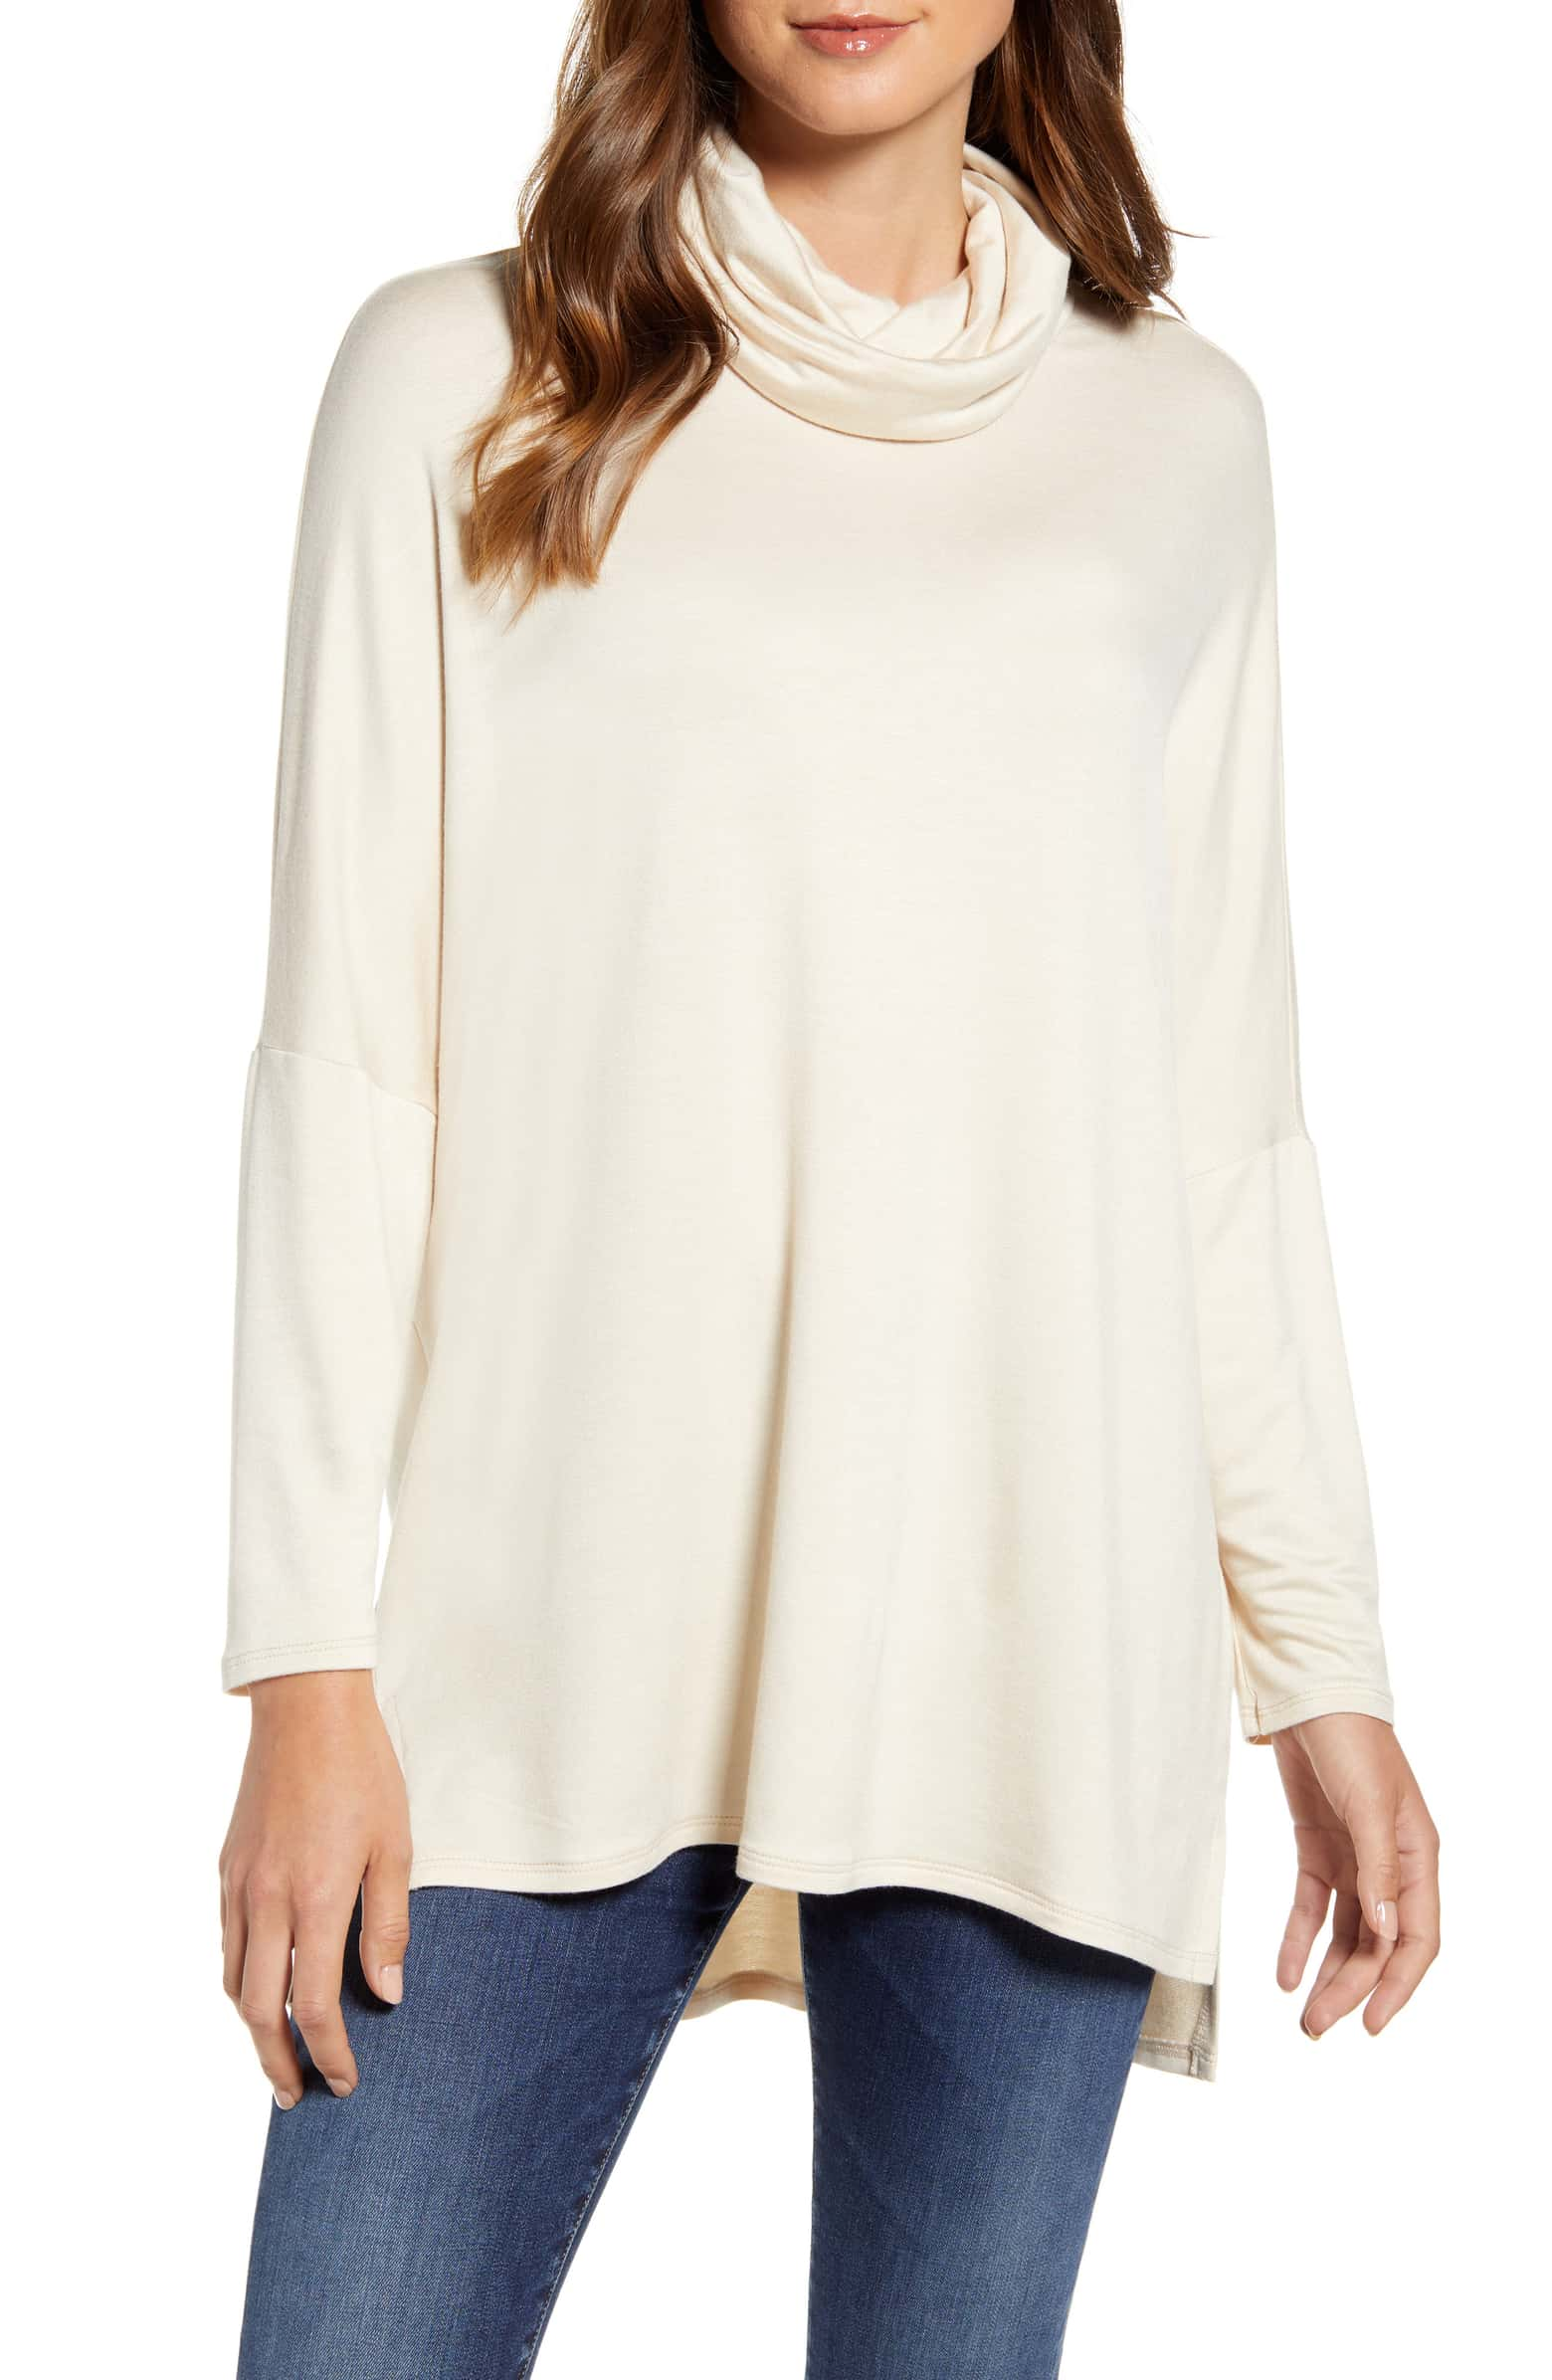 High Low Tunic - SALE: $29.90